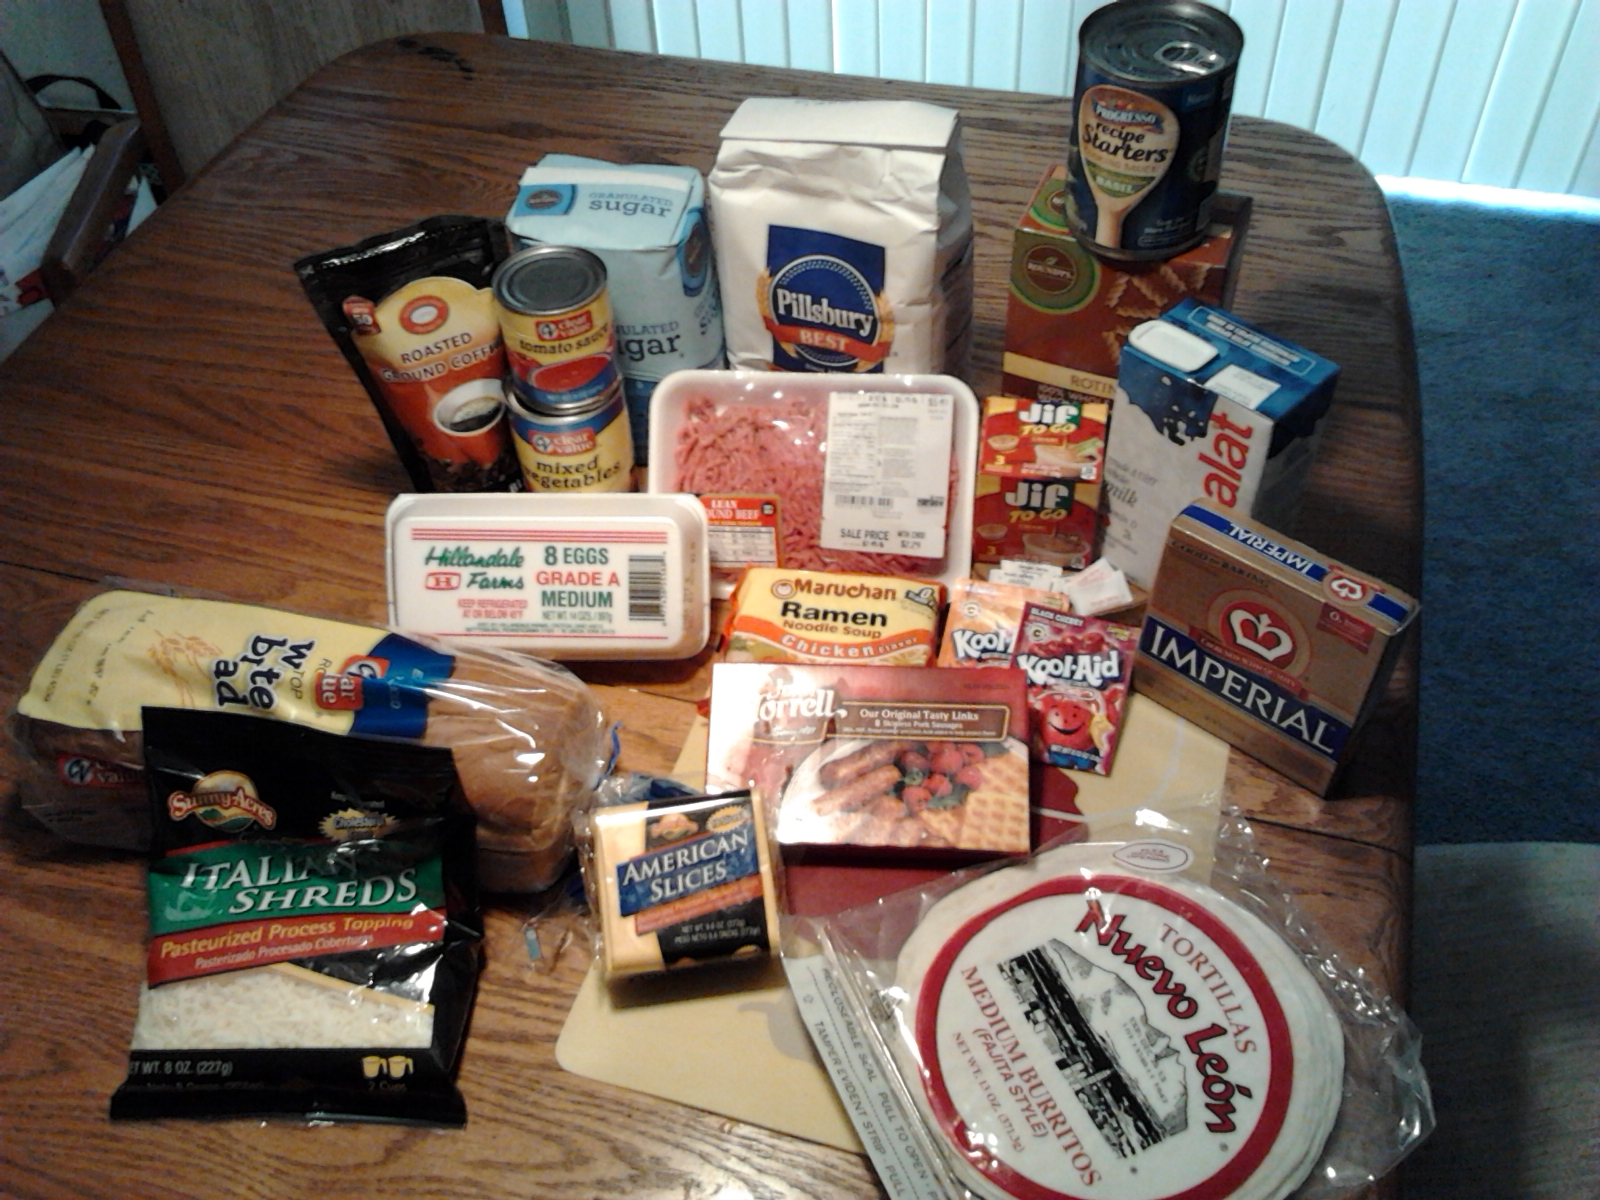 What food stamps are intended for.